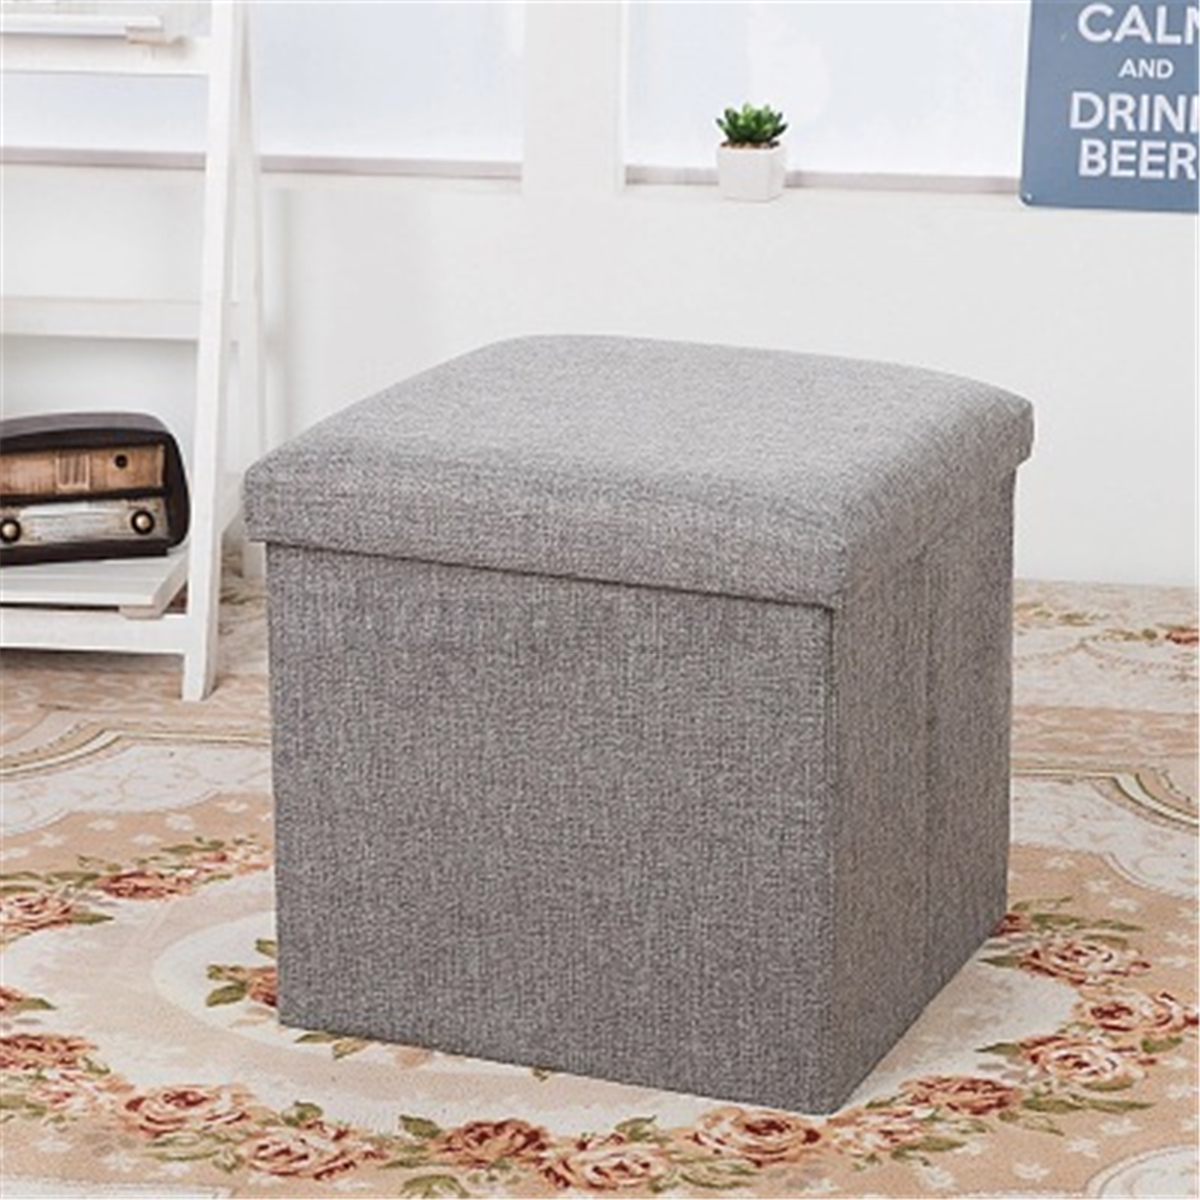 tabouret pouf banc coffre de rangement si ge banquette meubles repose pied ebay. Black Bedroom Furniture Sets. Home Design Ideas